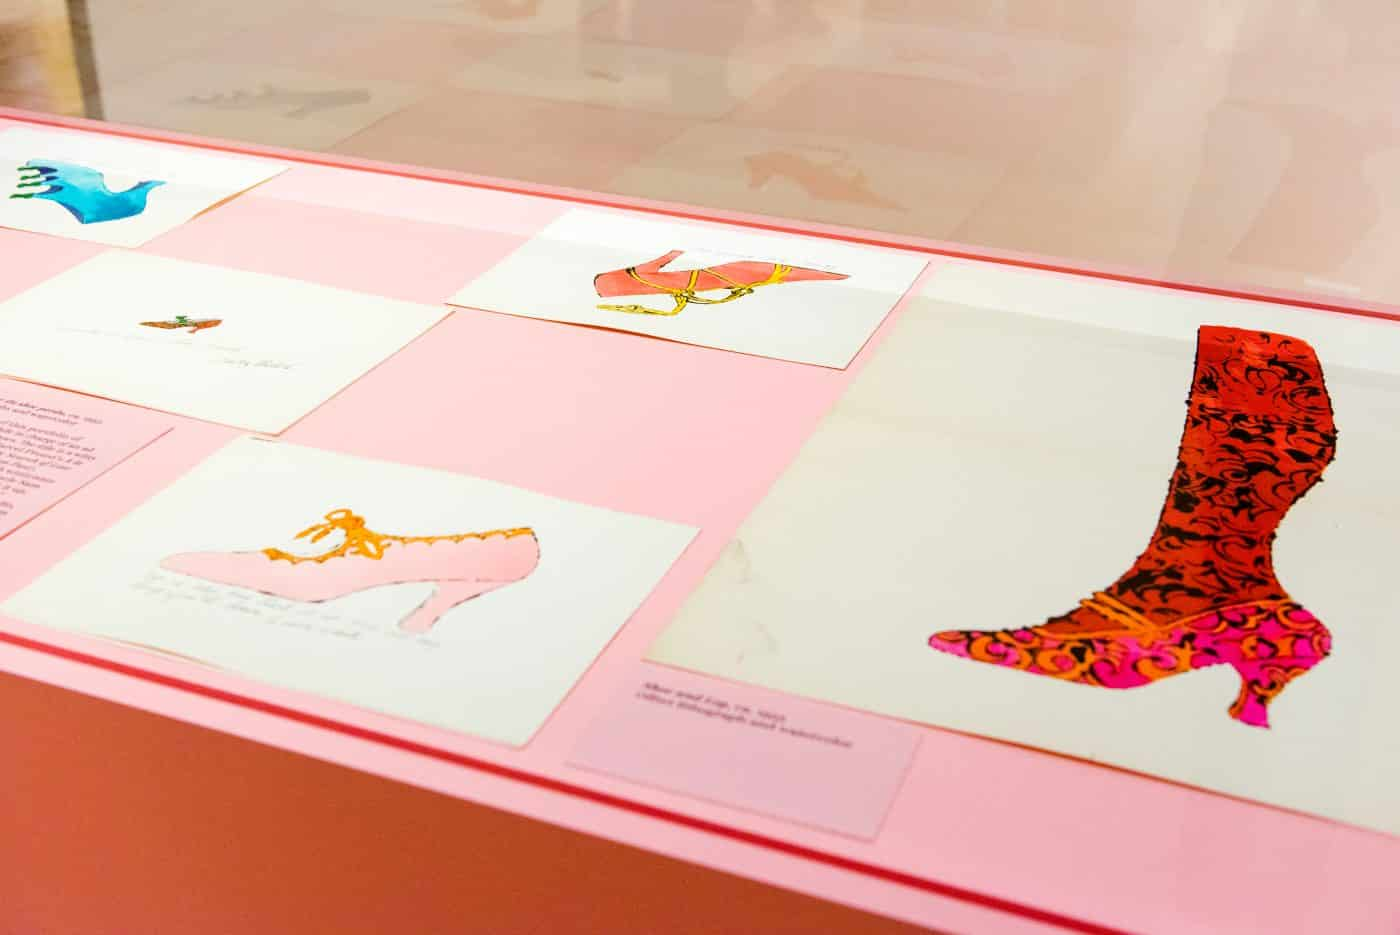 """Andy Warhol's 1950s shoe drawings in """"Andy Warhol: Prints from the Collections of Jordan D. Schnitzer and His Family Foundation"""" at the Palm Sprigs Museum of Art."""